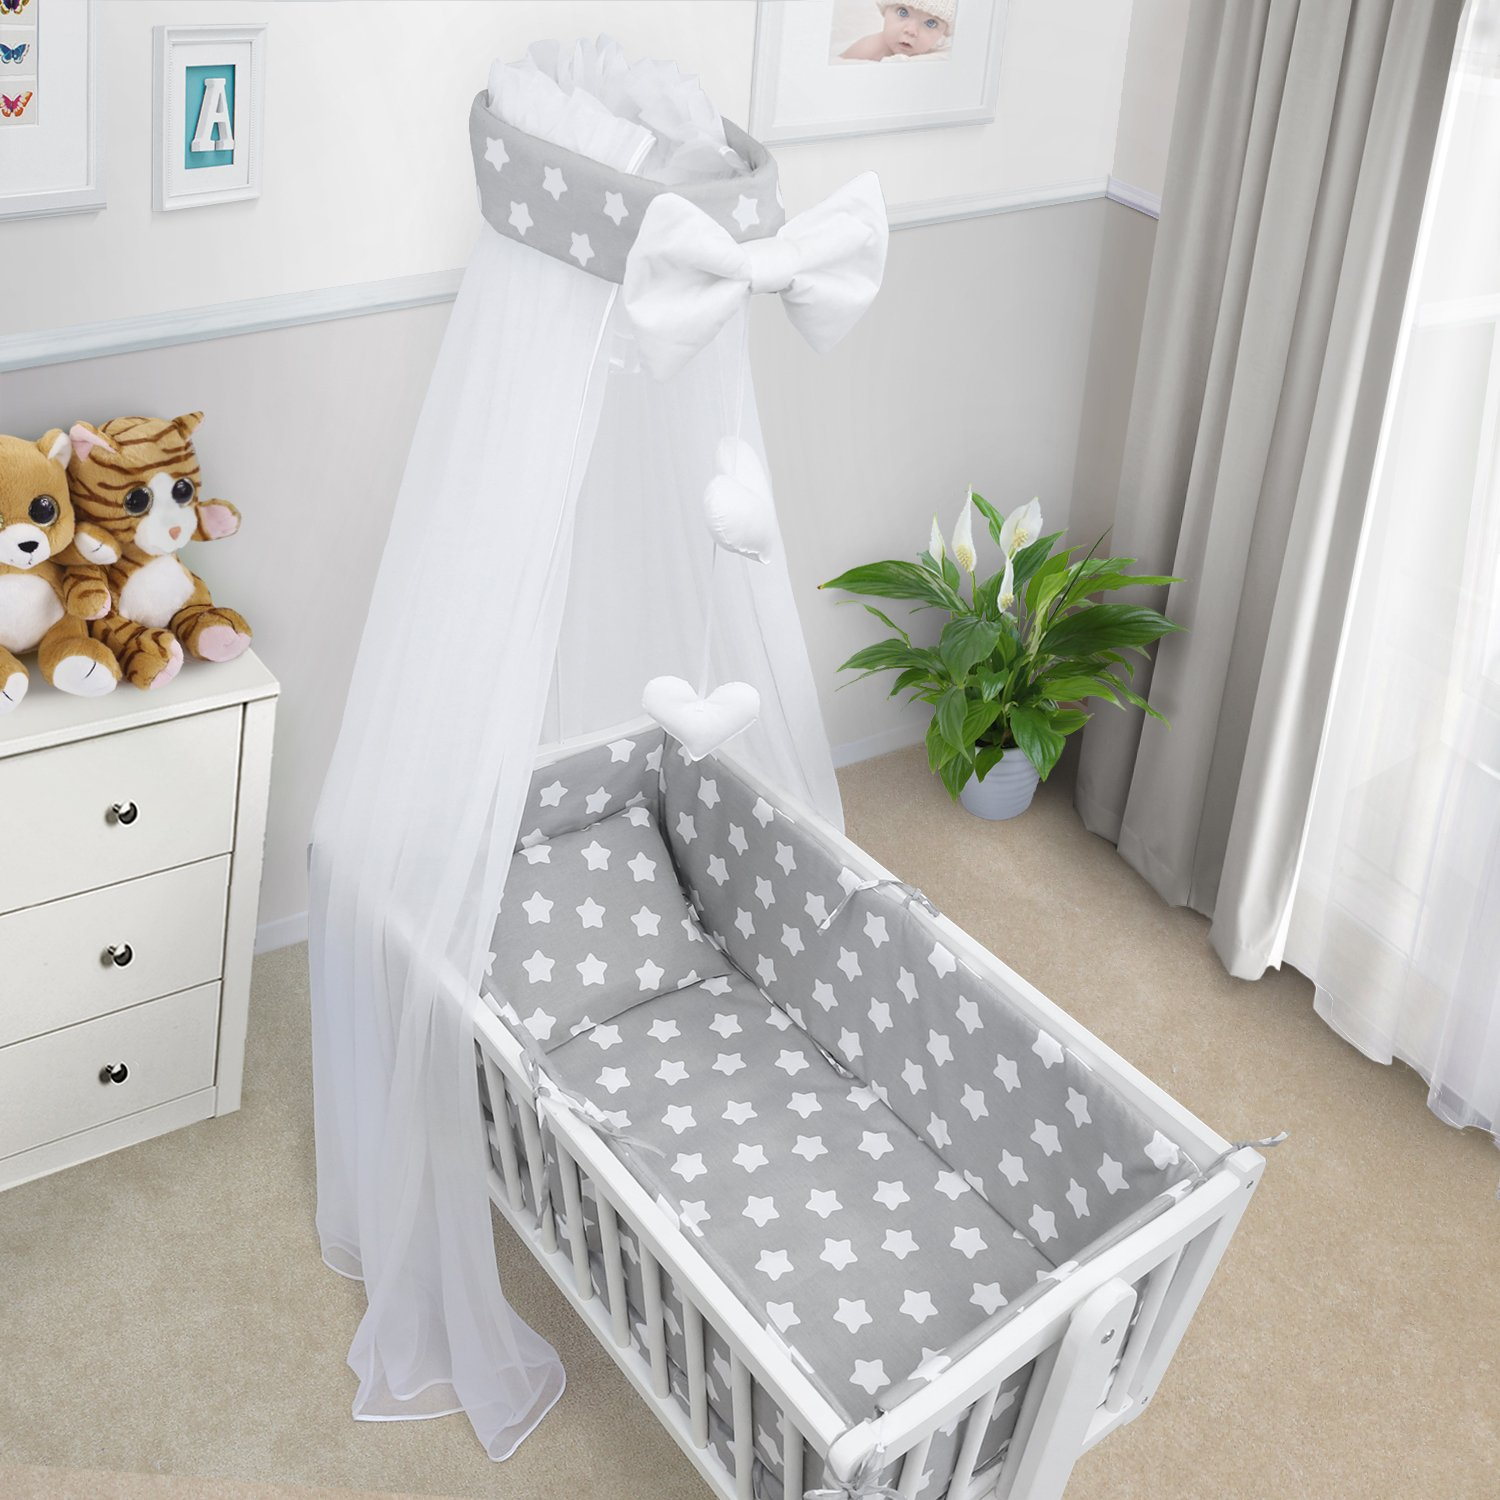 BABY BEDDING SET CRIB CRADLE 10 Pieces PILLOW DUVET COVER BUMPER CANOPY to fit Crib 90x40cm 100% COTTON (Big Stars Grey) TheLittles24